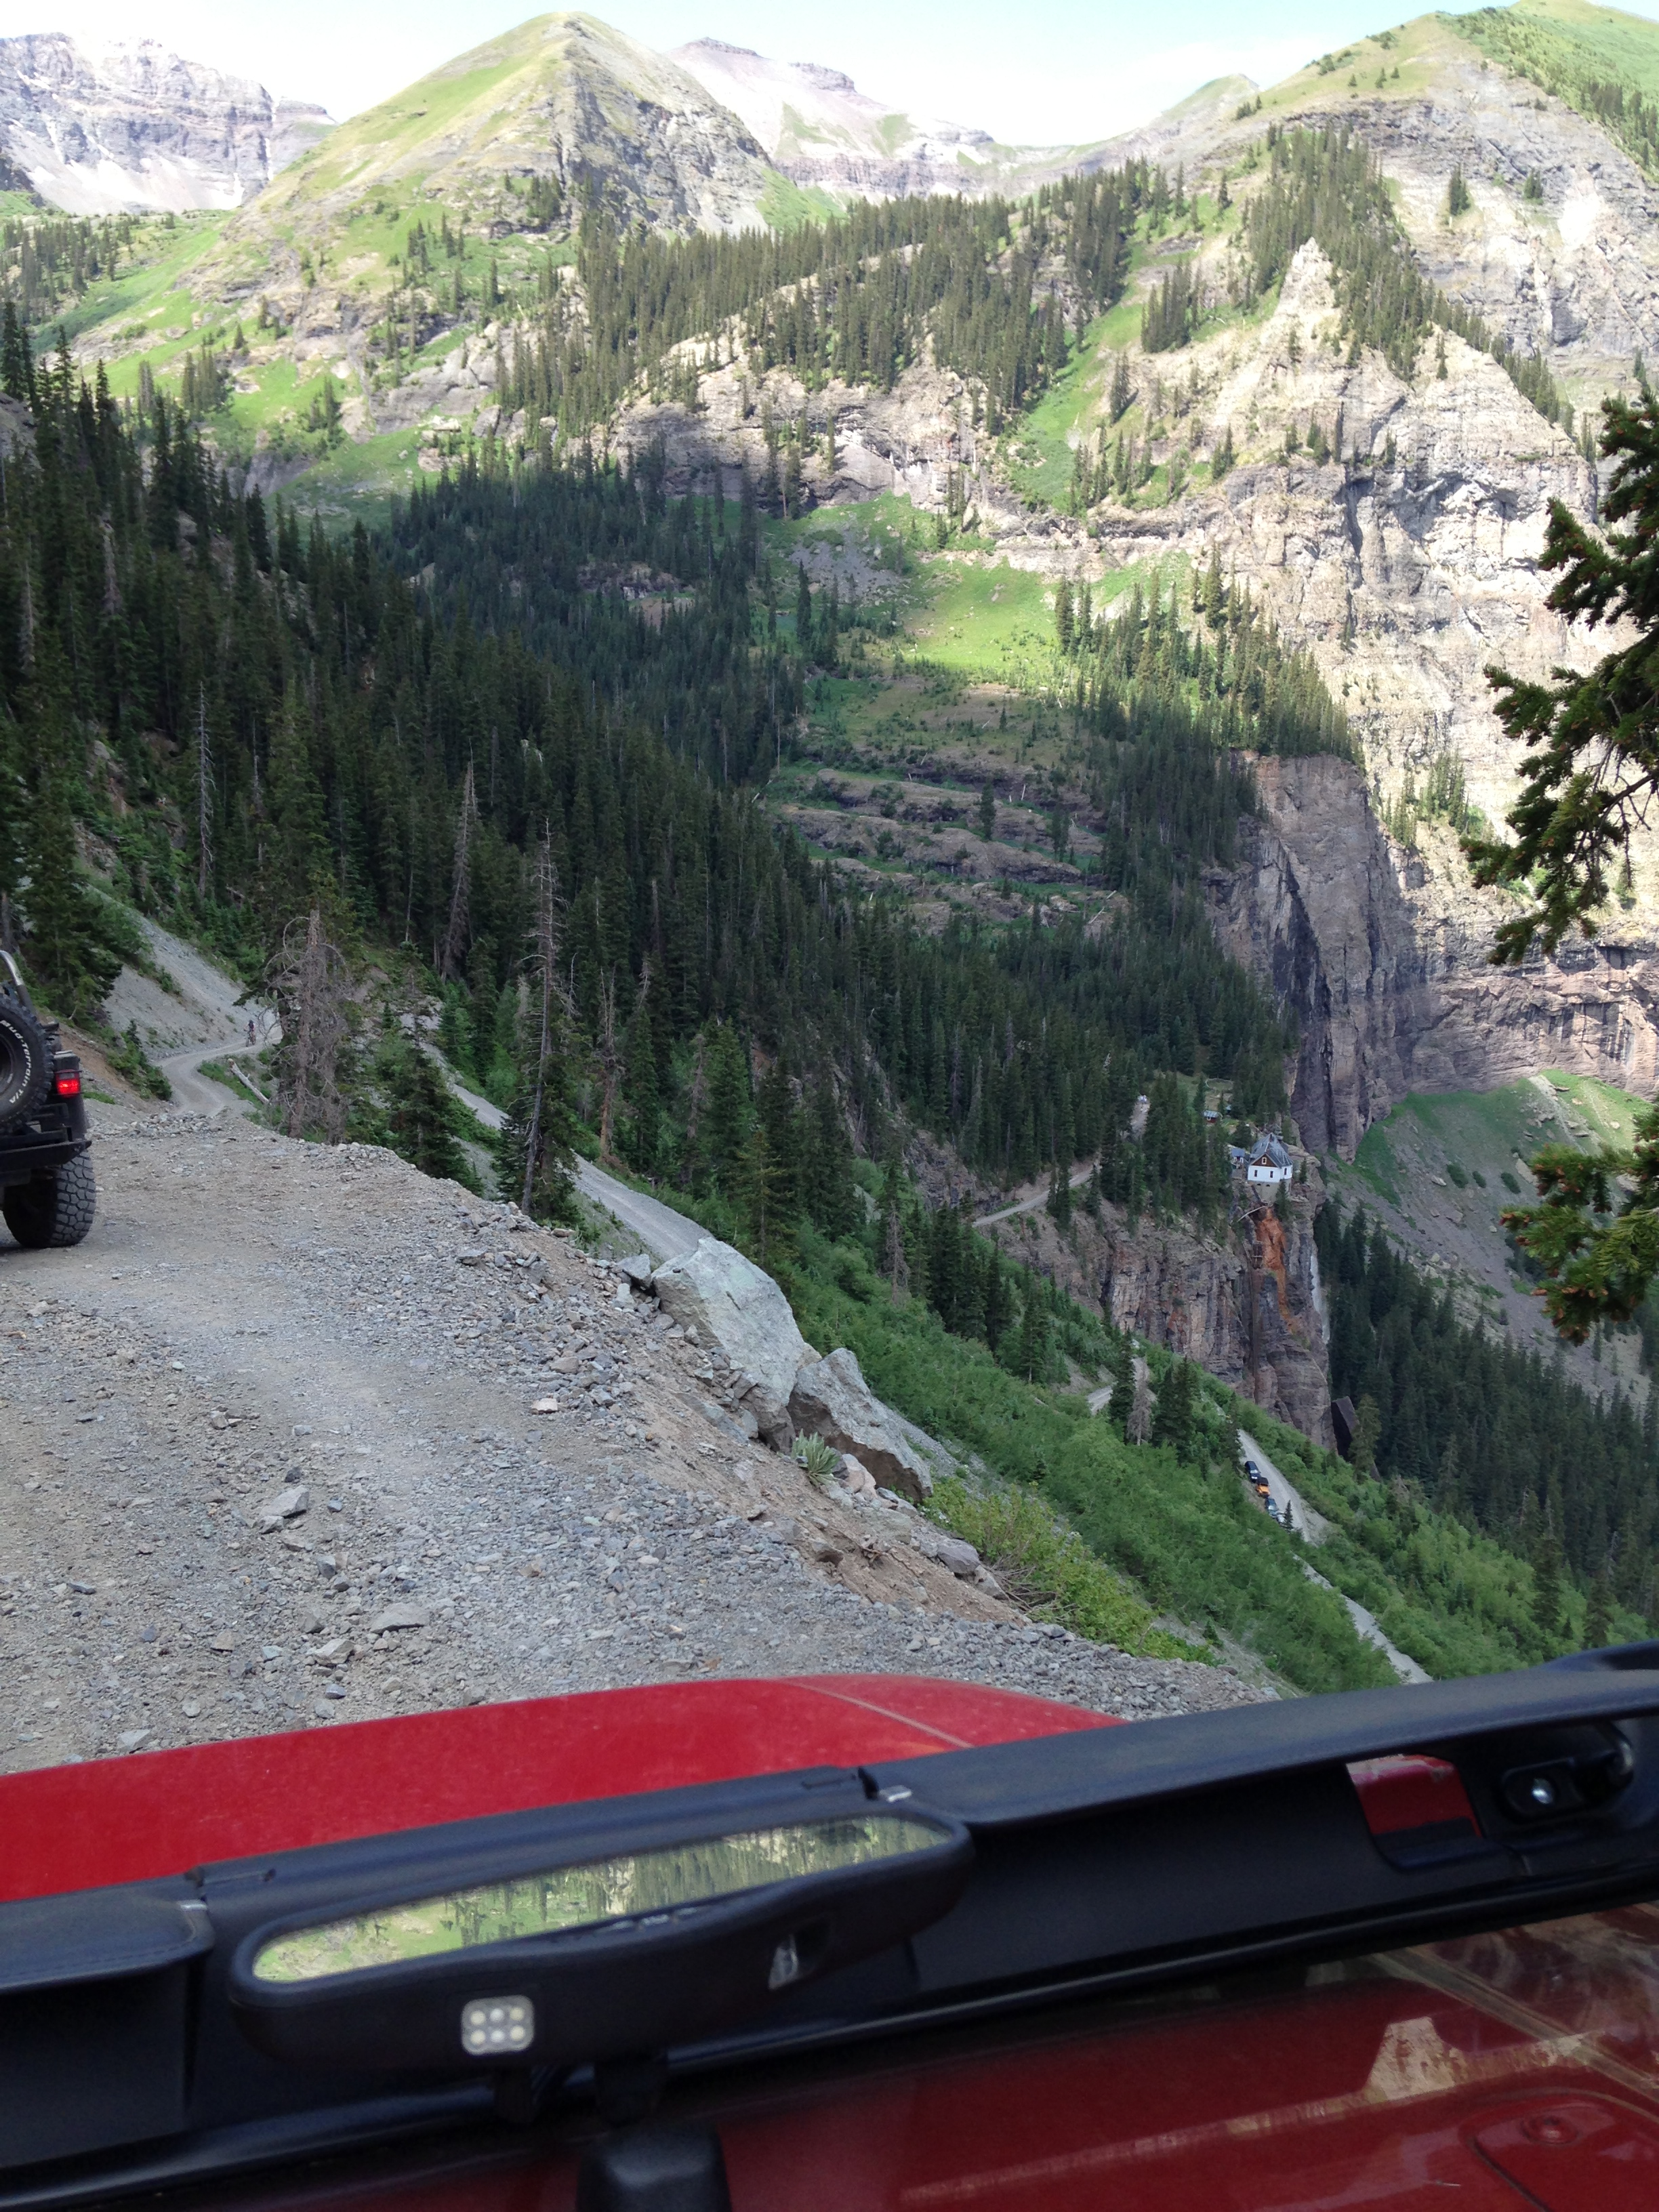 Black Bear Pass Colorado >> Black Bear Pass - Colorado 2013 Part 3 | Jeeping Off-Road | Graham J. McNeill a.k.a The Mad Brit